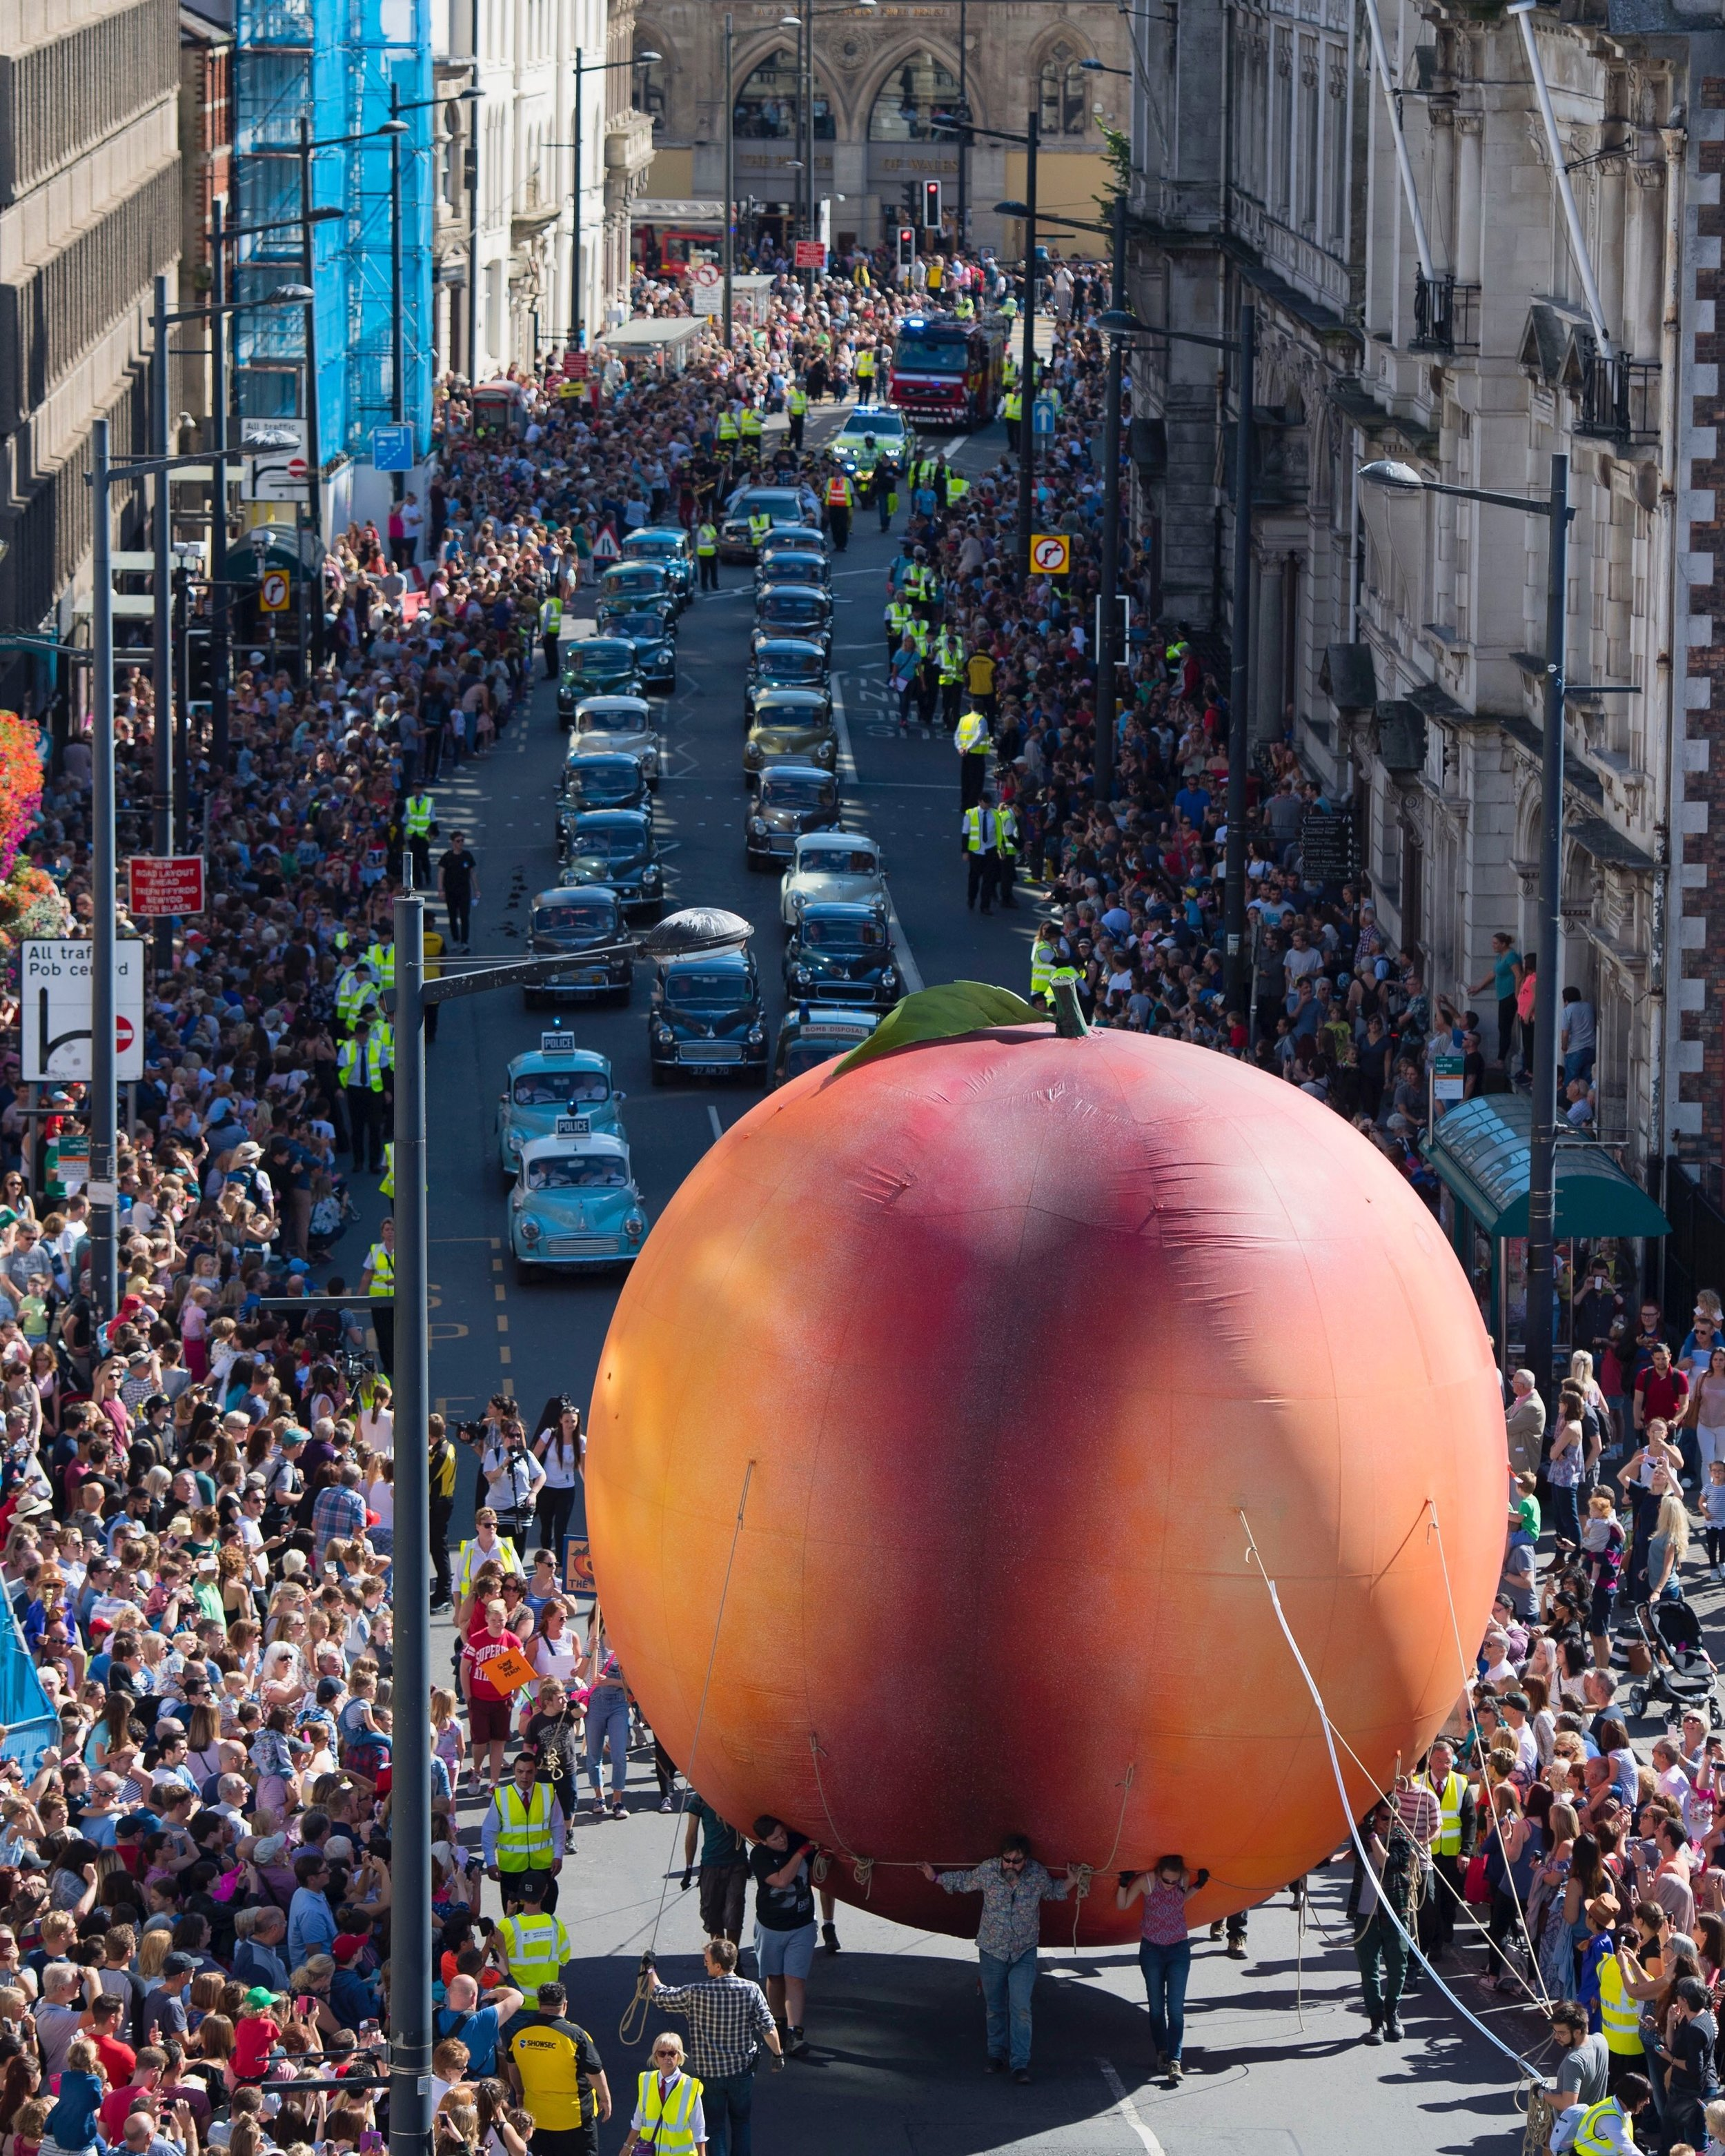 A giant peach makes its way down Westgate Street in Cardiff, South Wales during the Roald Dahl City of the Unexpected event.